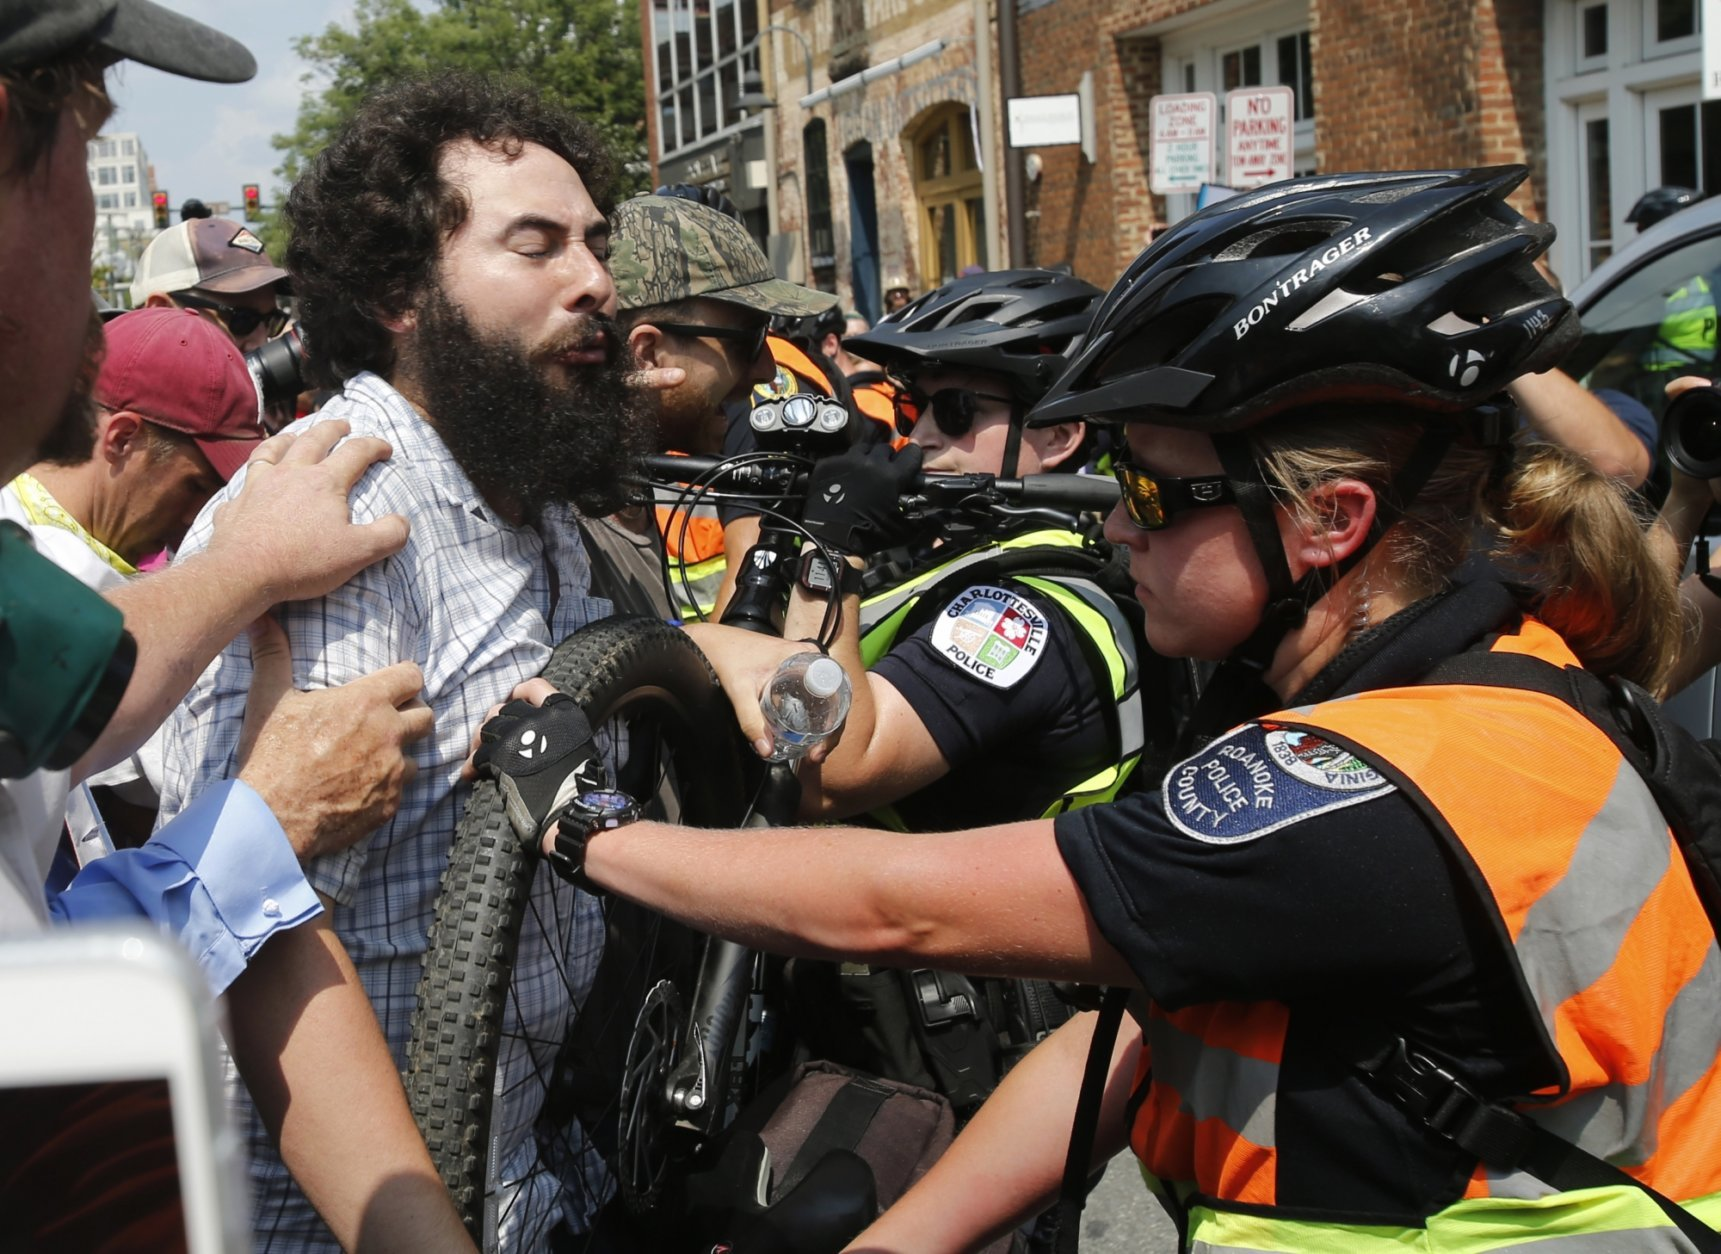 A demonstrator confronts police at the intersection where Heather Heyer was killed last year as they mark the anniversary of the Unite the Right rally in Charlottesville, Va., Sunday, Aug. 12, 2018. On that day, white supremacists and counterprotesters clashed in the city streets before a car driven into a crowd struck and killed Heyer. (AP Photo/Steve Helber)